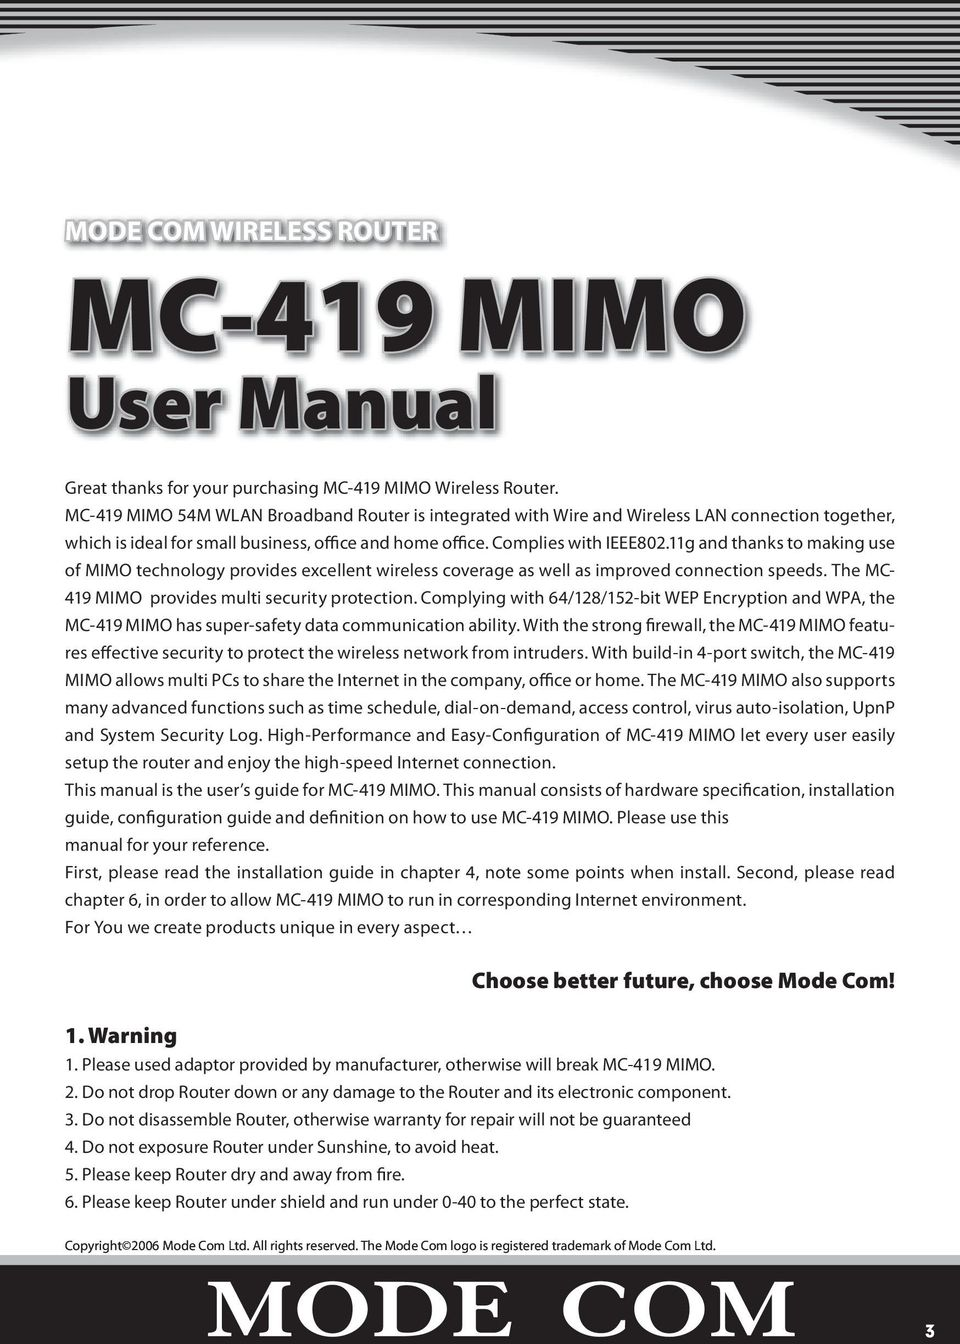 11g and thanks to making use of MIMO technology provides excellent wireless coverage as well as improved connection speeds. The MC- 419 MIMO provides multi security protection.